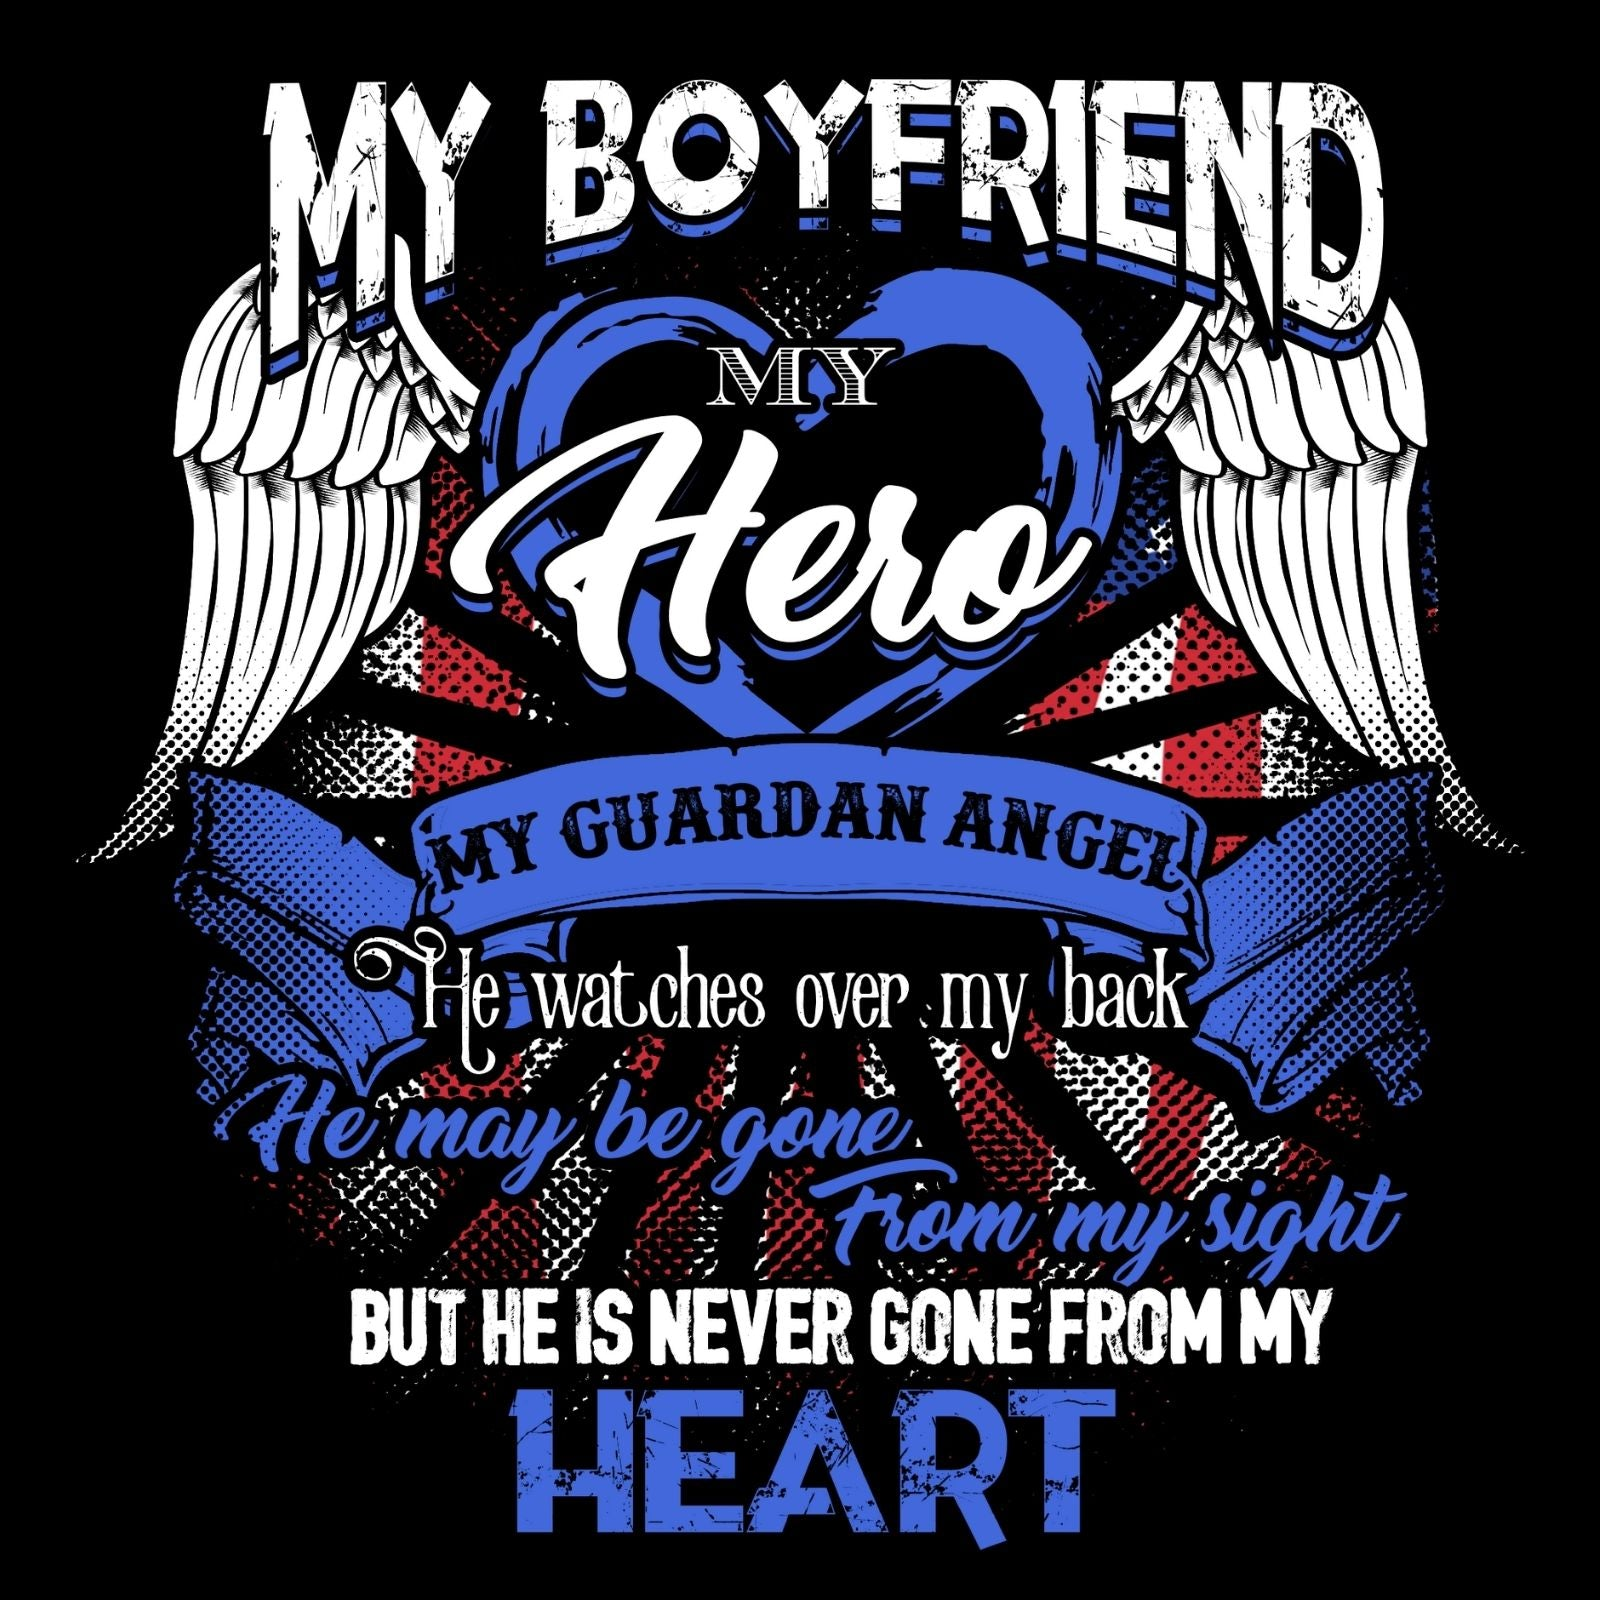 My Boyfriend My Hero My Guardian Angel He Watches Over MY Back He Maybe Gone From My Sight But He Is Never Gone From My Heart - Bastard Graphics